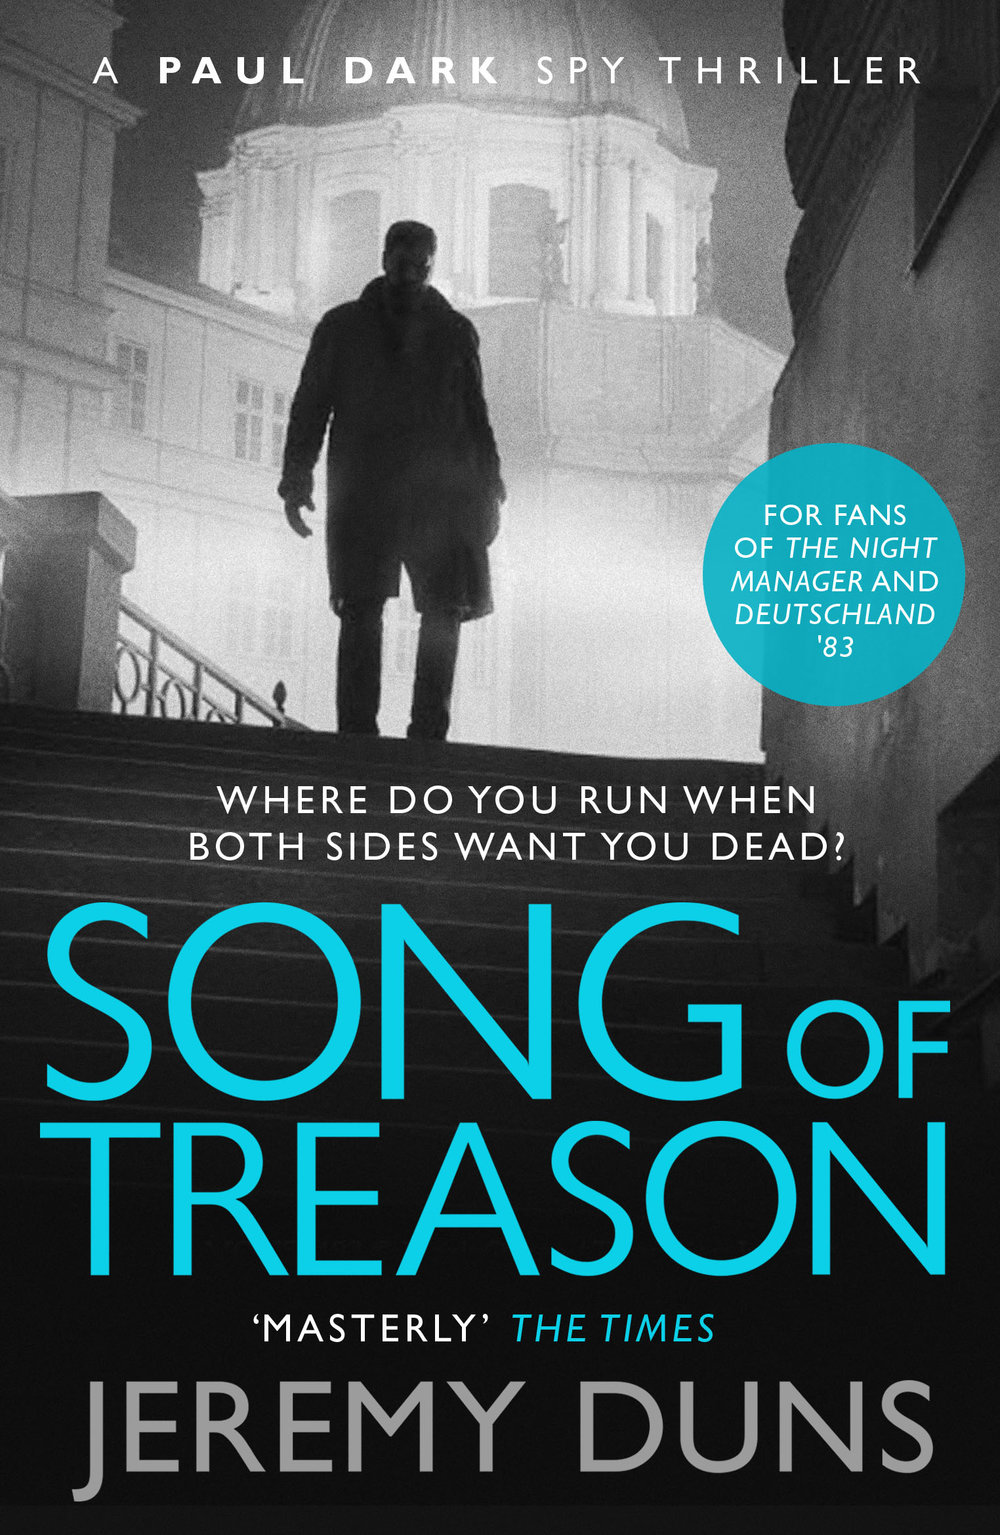 Song Of Treason Ebook.jpg